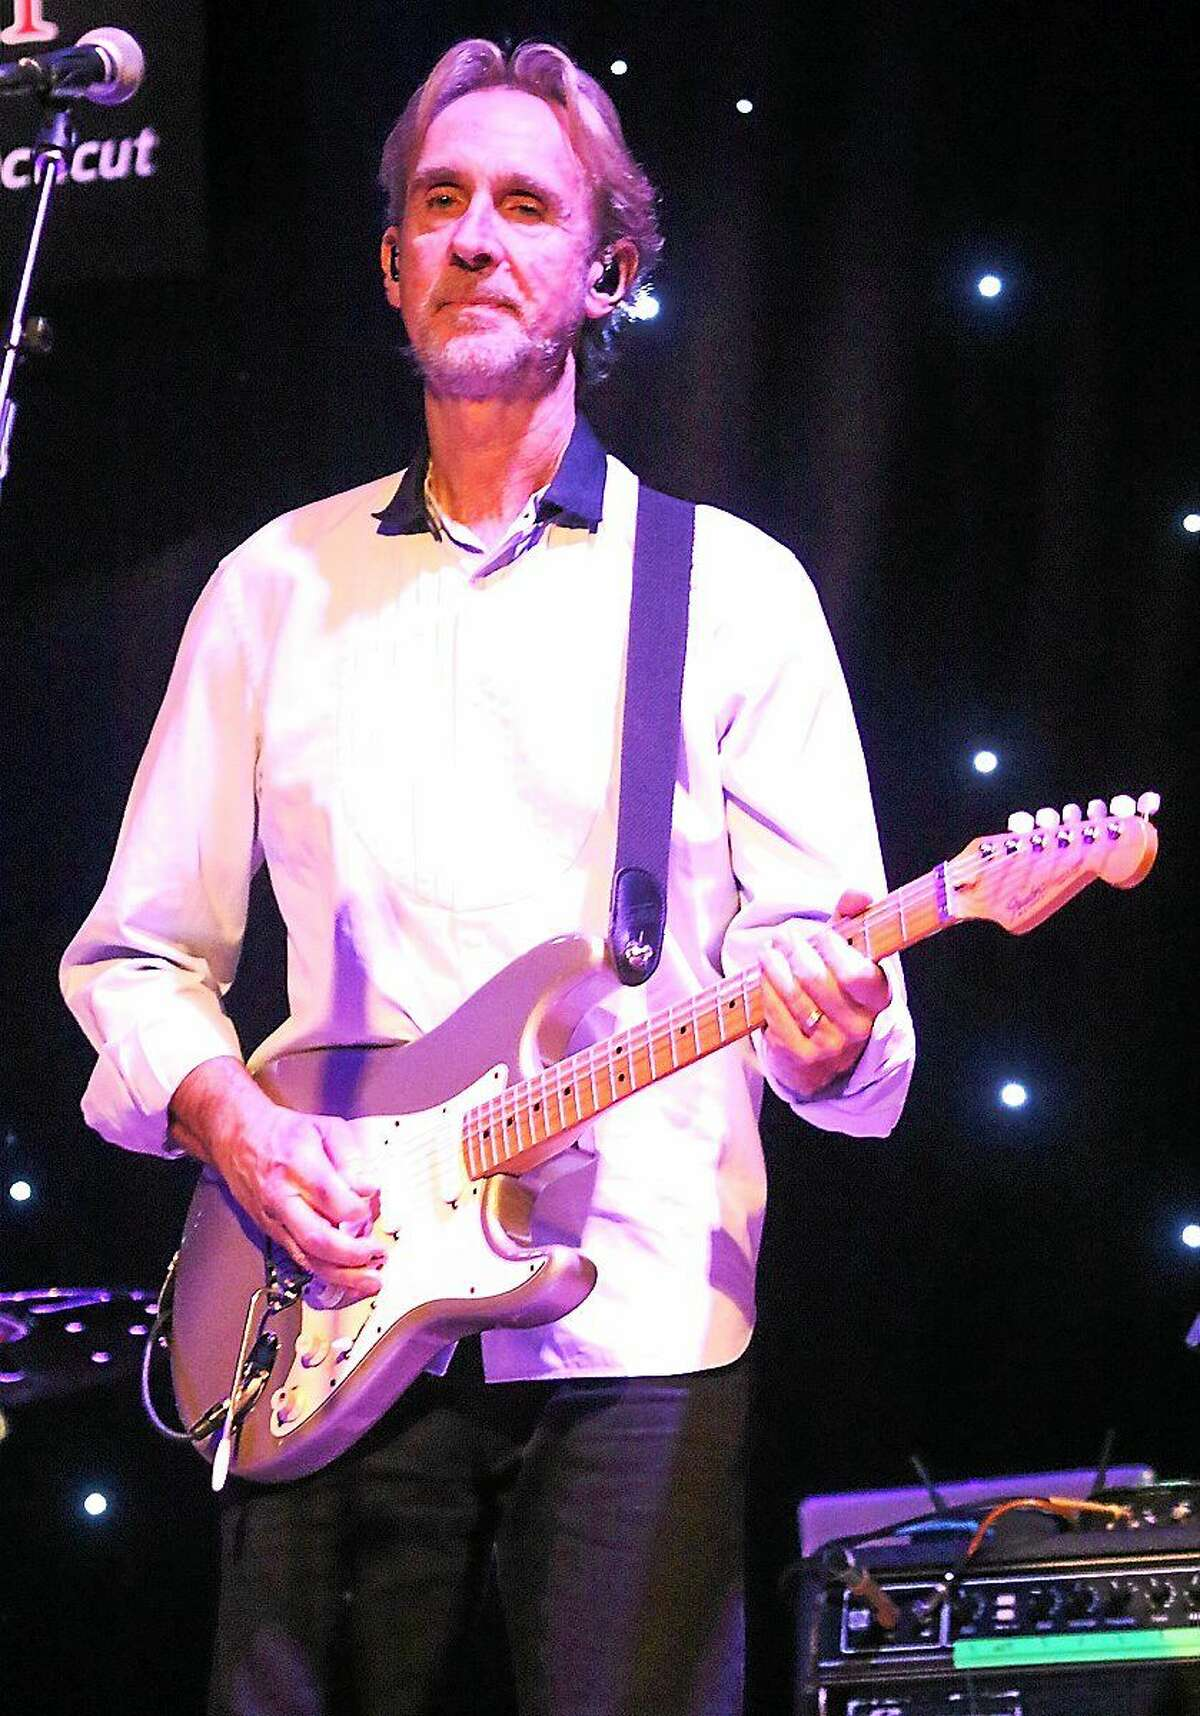 Photo by John Atashian Singer, songwriter and guitarist Mike Rutherford of Mike + the Mechanics is shown performing on stage at Infinity Hall in Hartford on Sunday March 8. Mike + The Mechanics are an English pop & rock supergroup formed back in 1985 as a side project of Mike Rutherford, one of the original band members of the group Genesis.